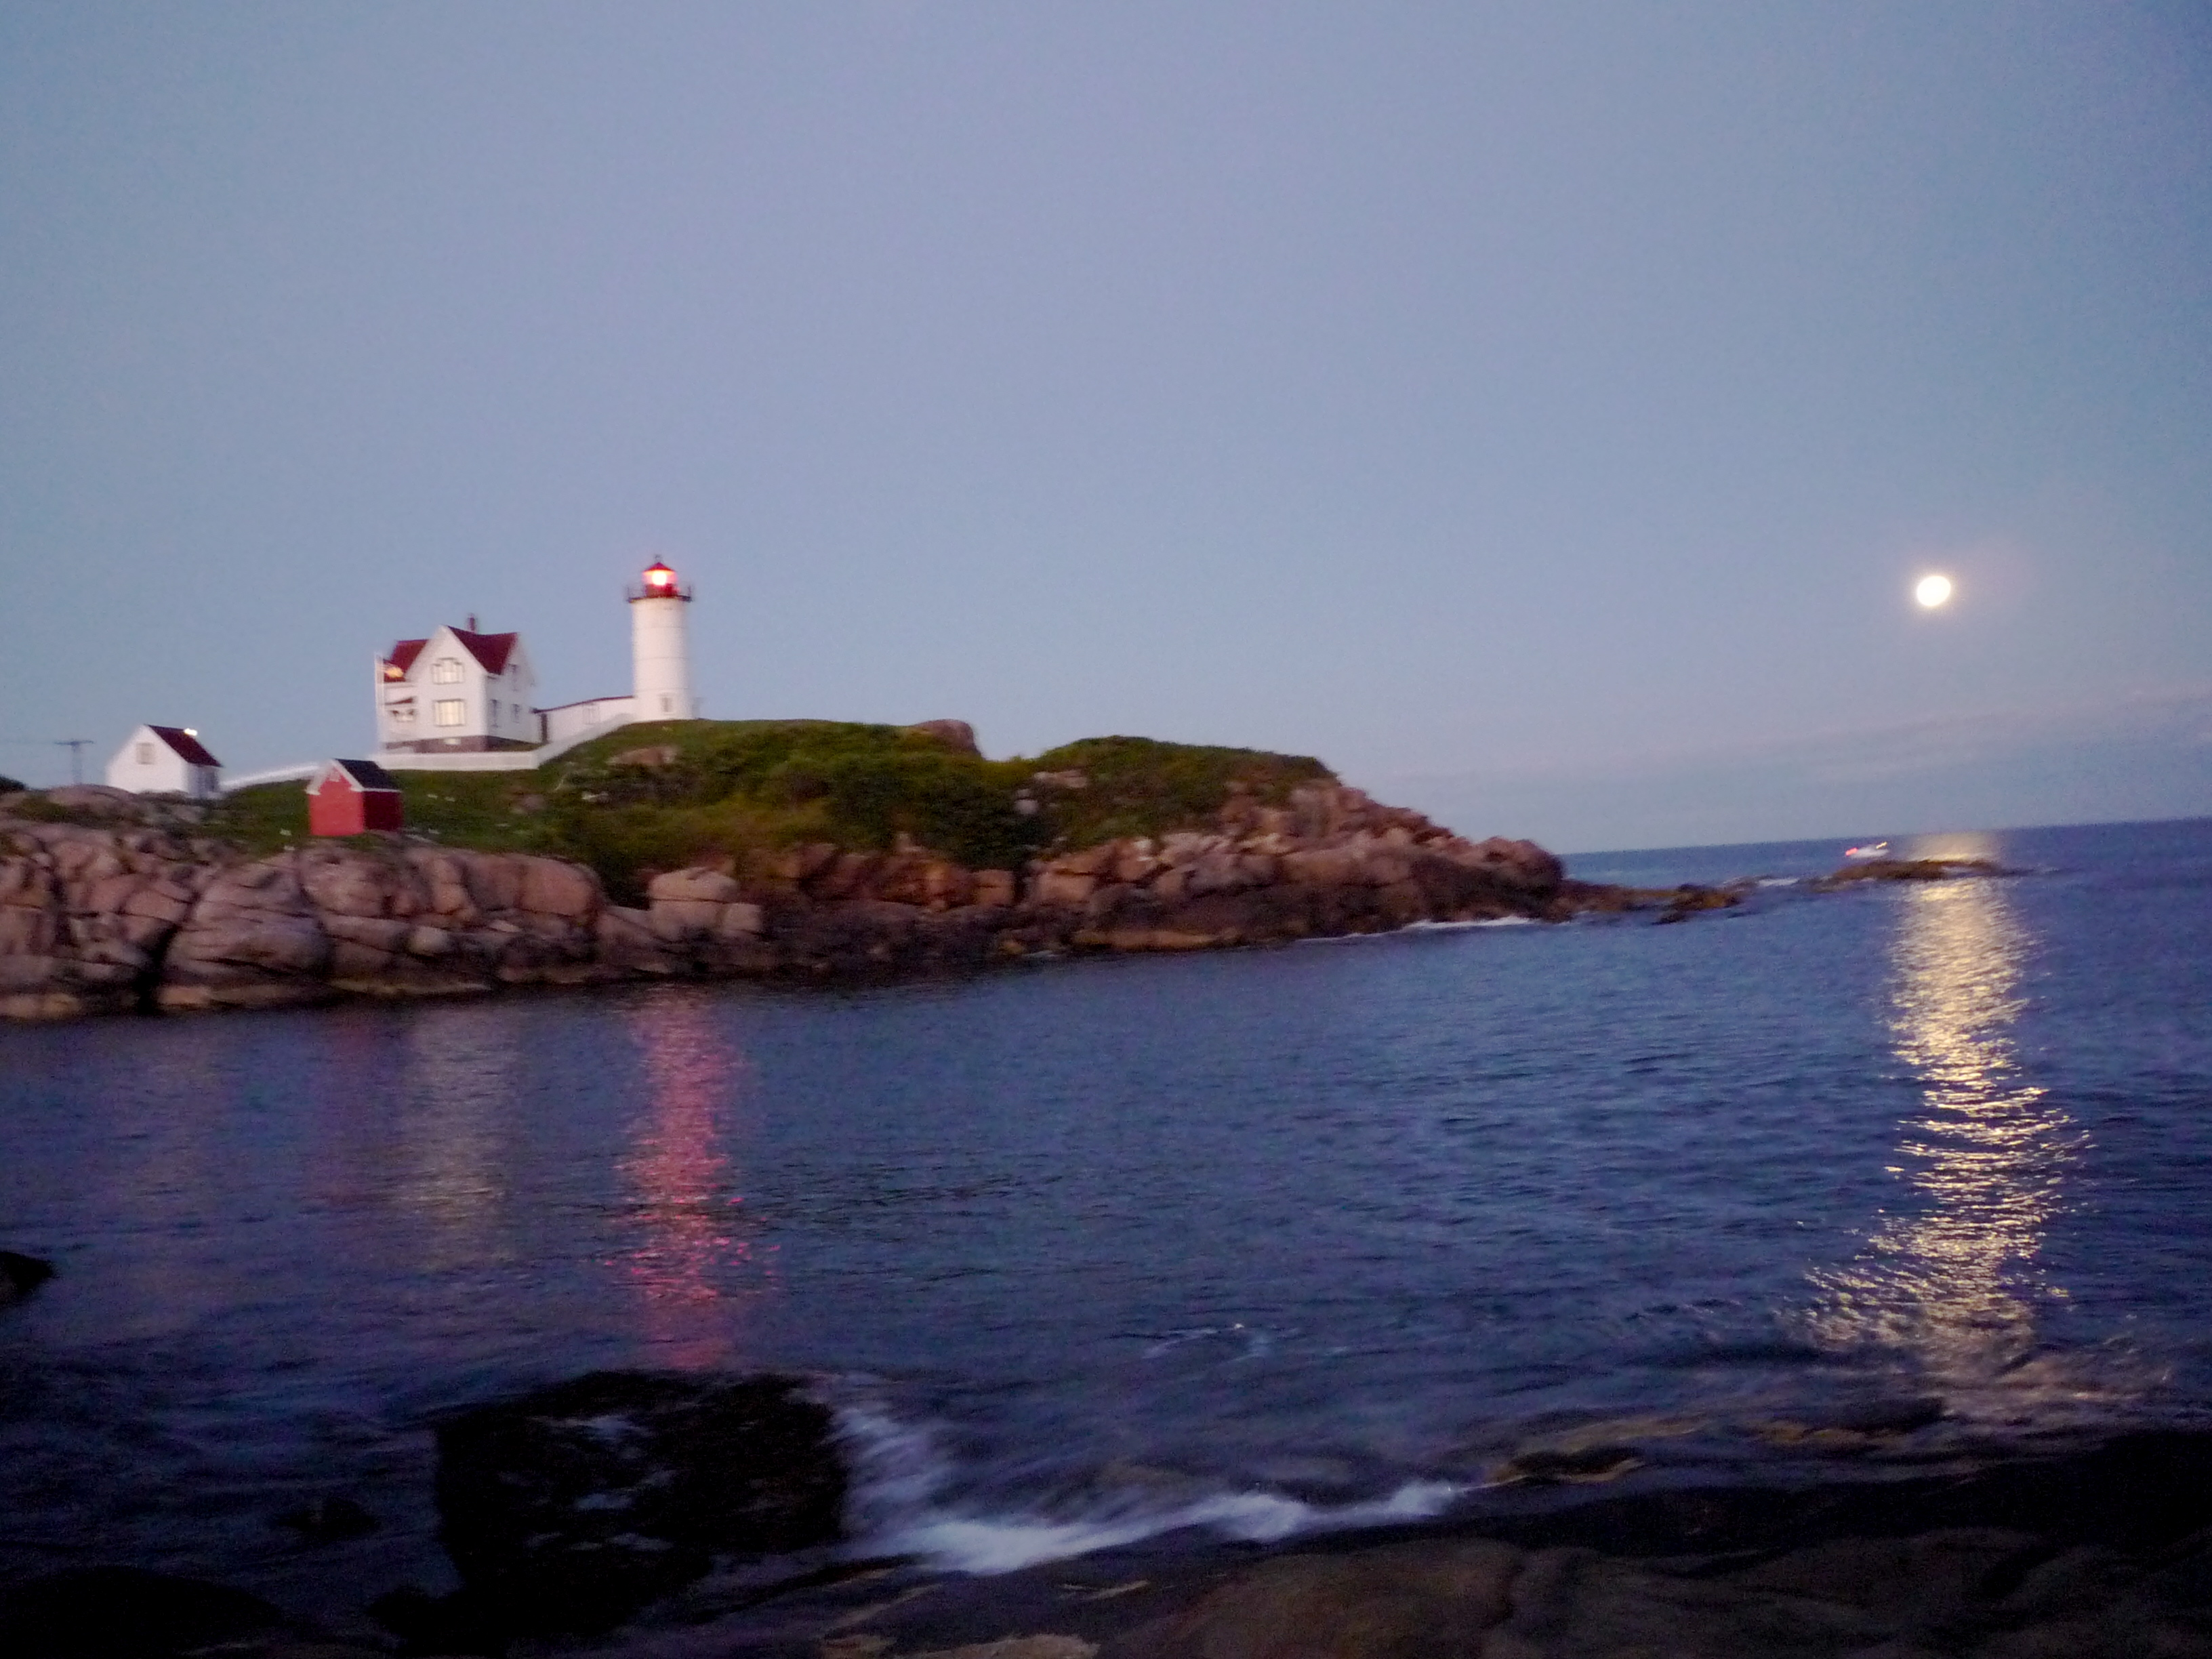 Nubble Lighthouse at Early Evening in Cape Neddick, Maine